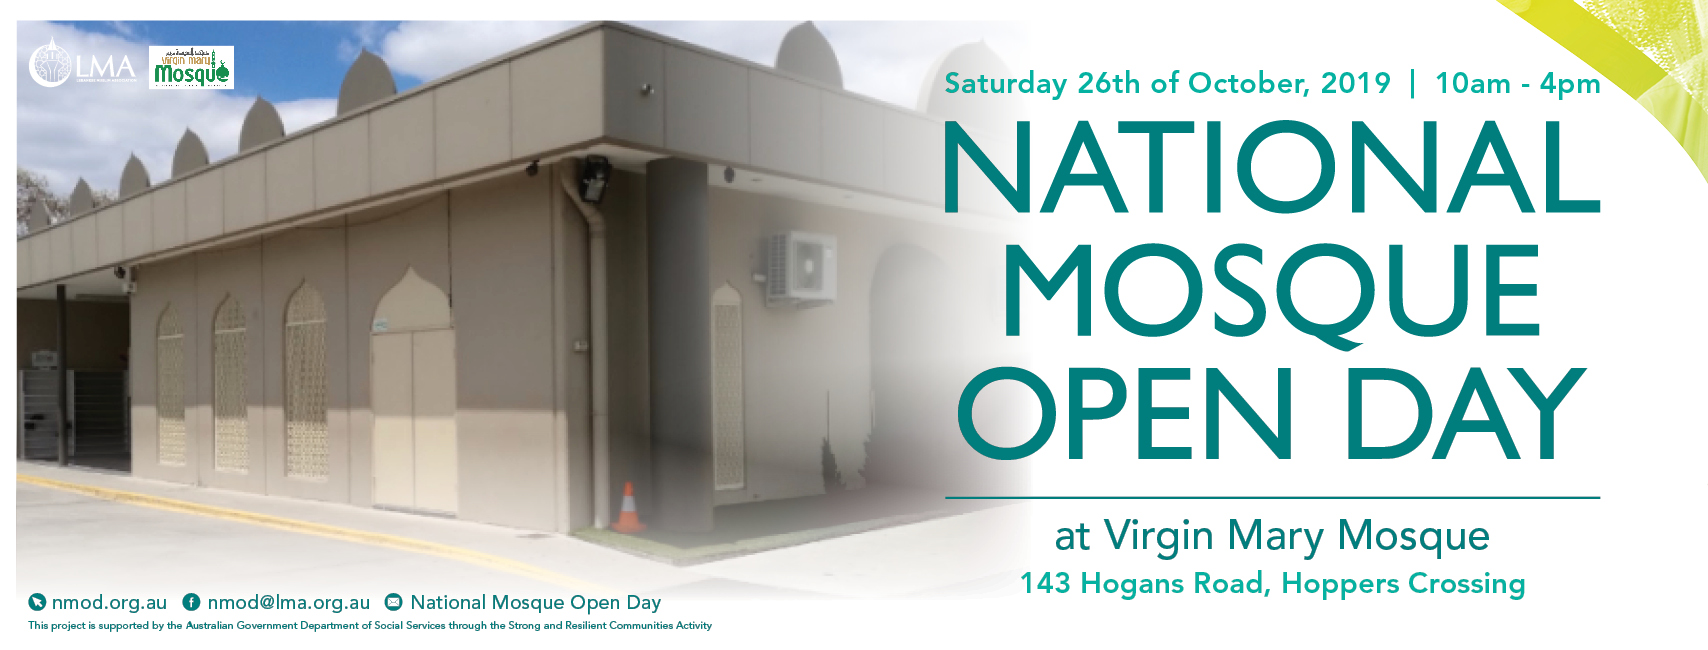 Virgin Mary Mosque Open Day